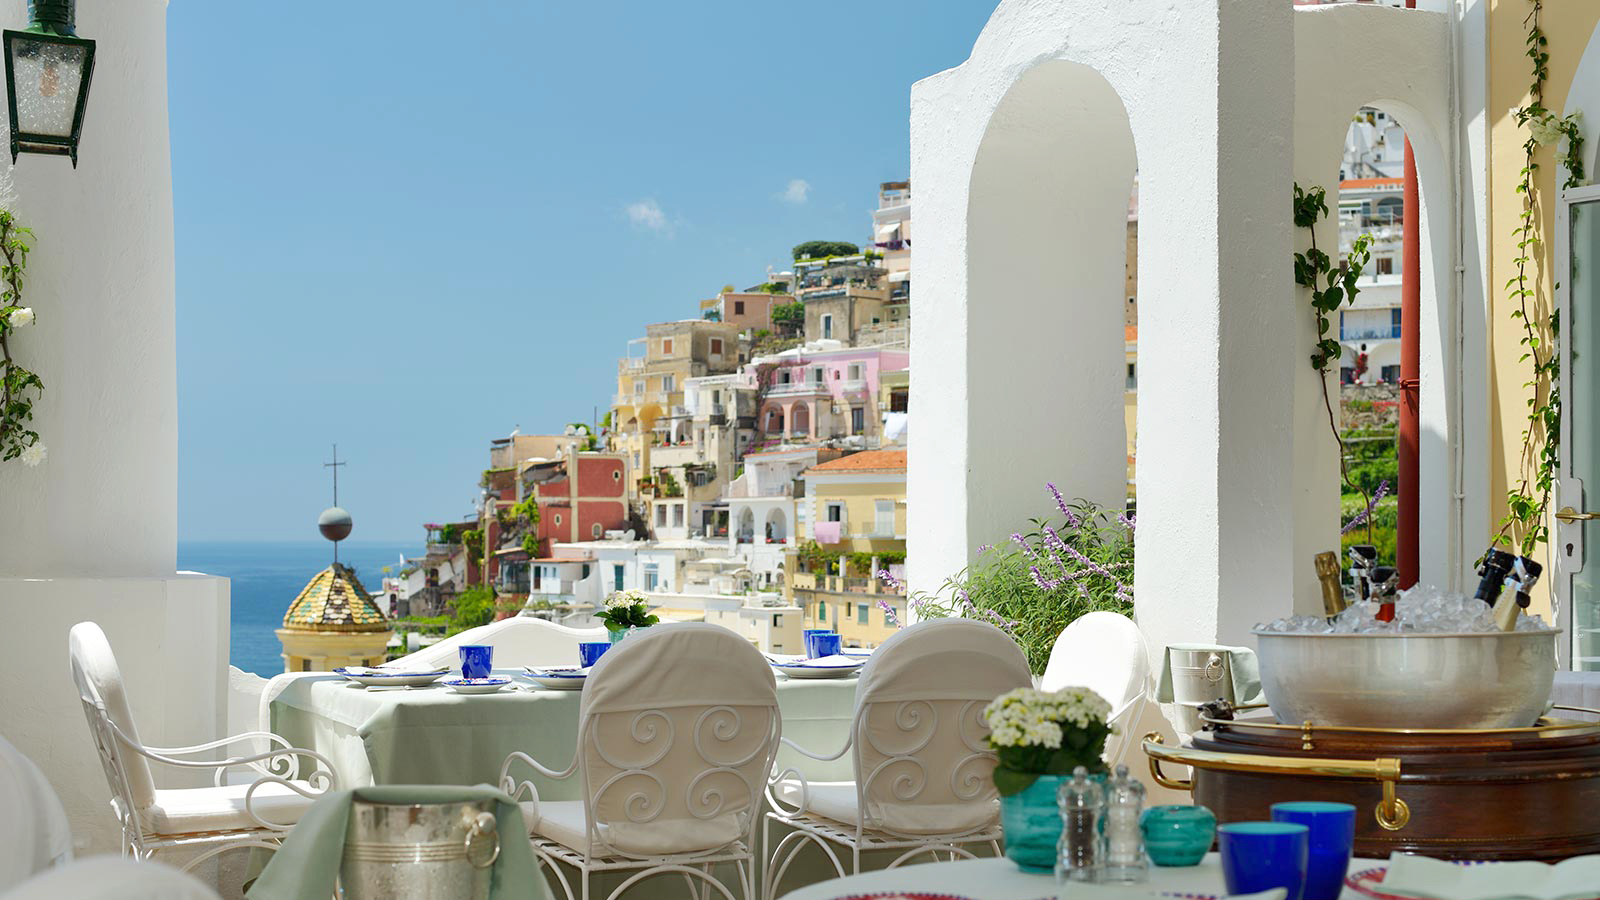 Mario Batali's Guide to the Amalfi Coast